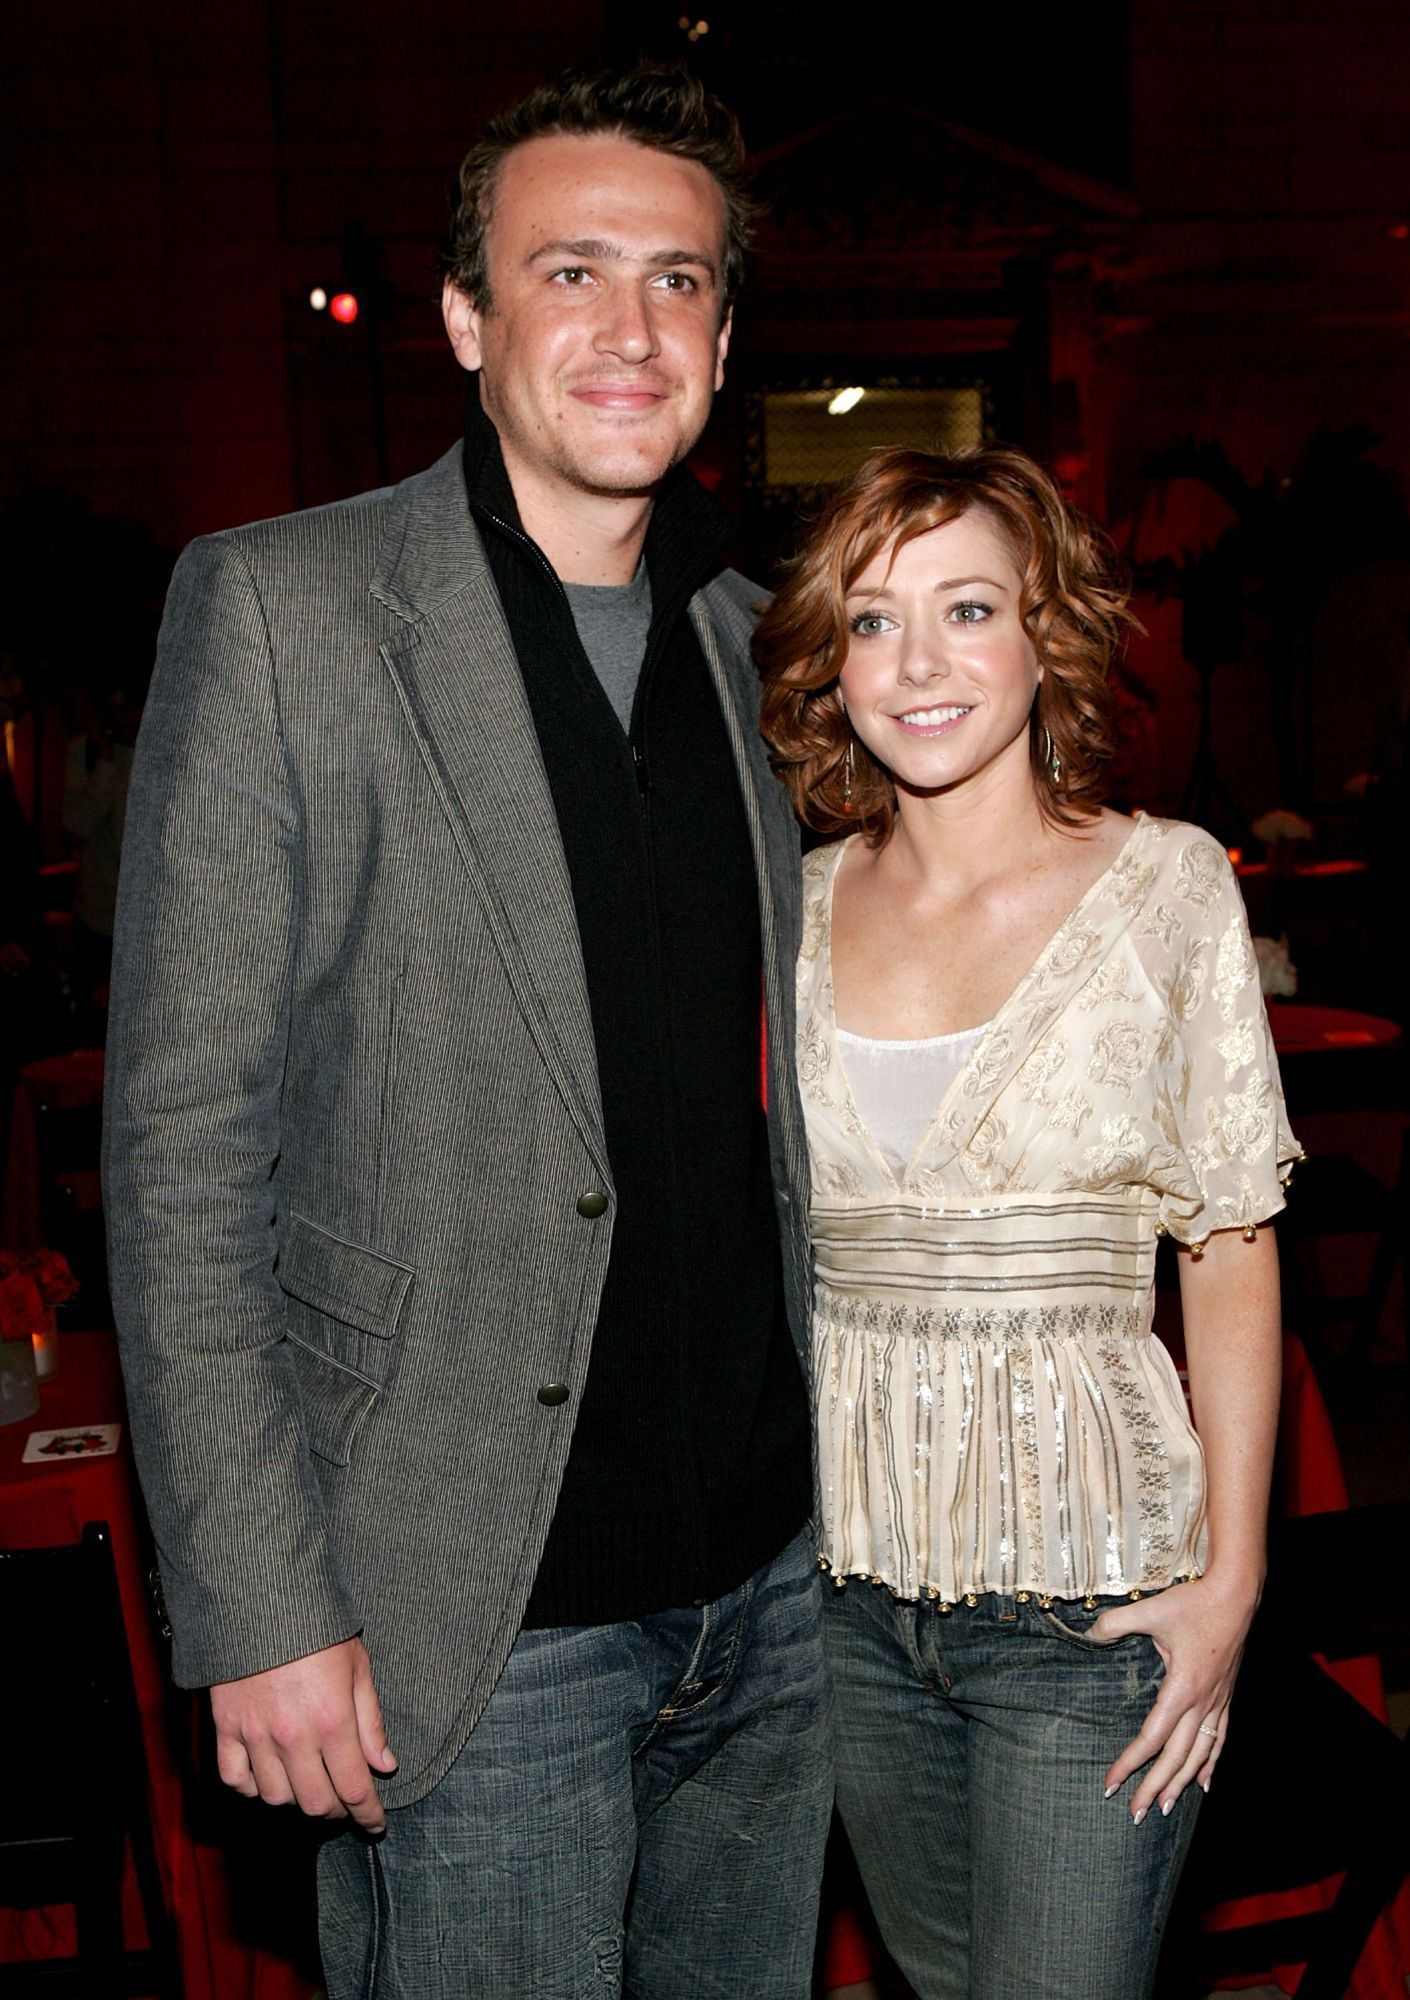 Jason & Aly - Jason Segel Photo (1462673) - Fanpop